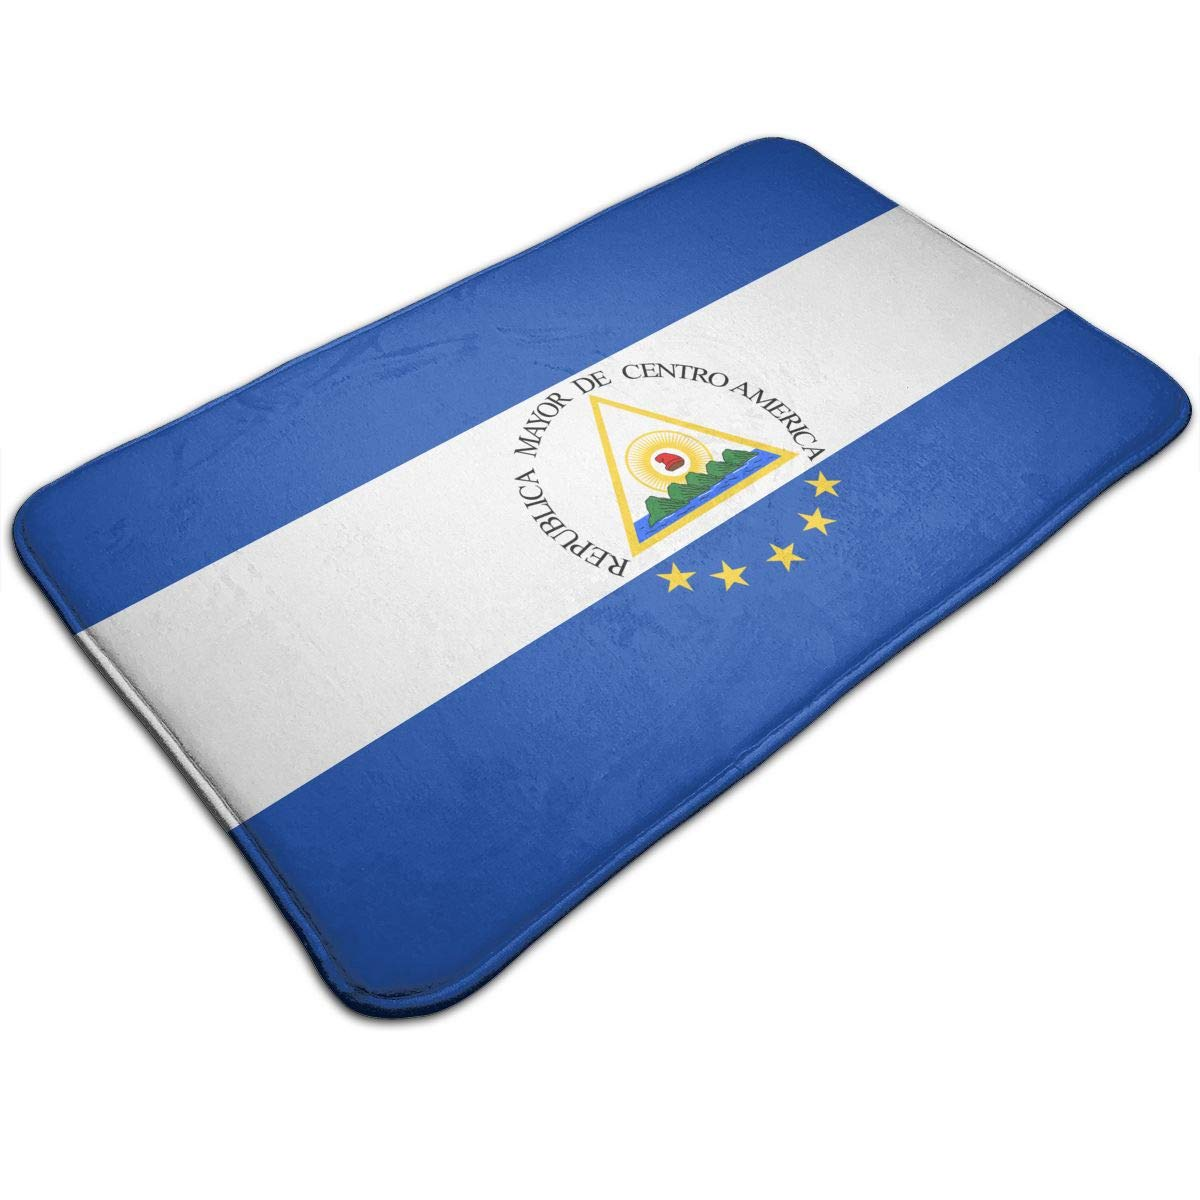 Yu Ang Yang Contour Rug/Interior and Exterior Shaggy Flag of The Greater Republic of Central America Mat